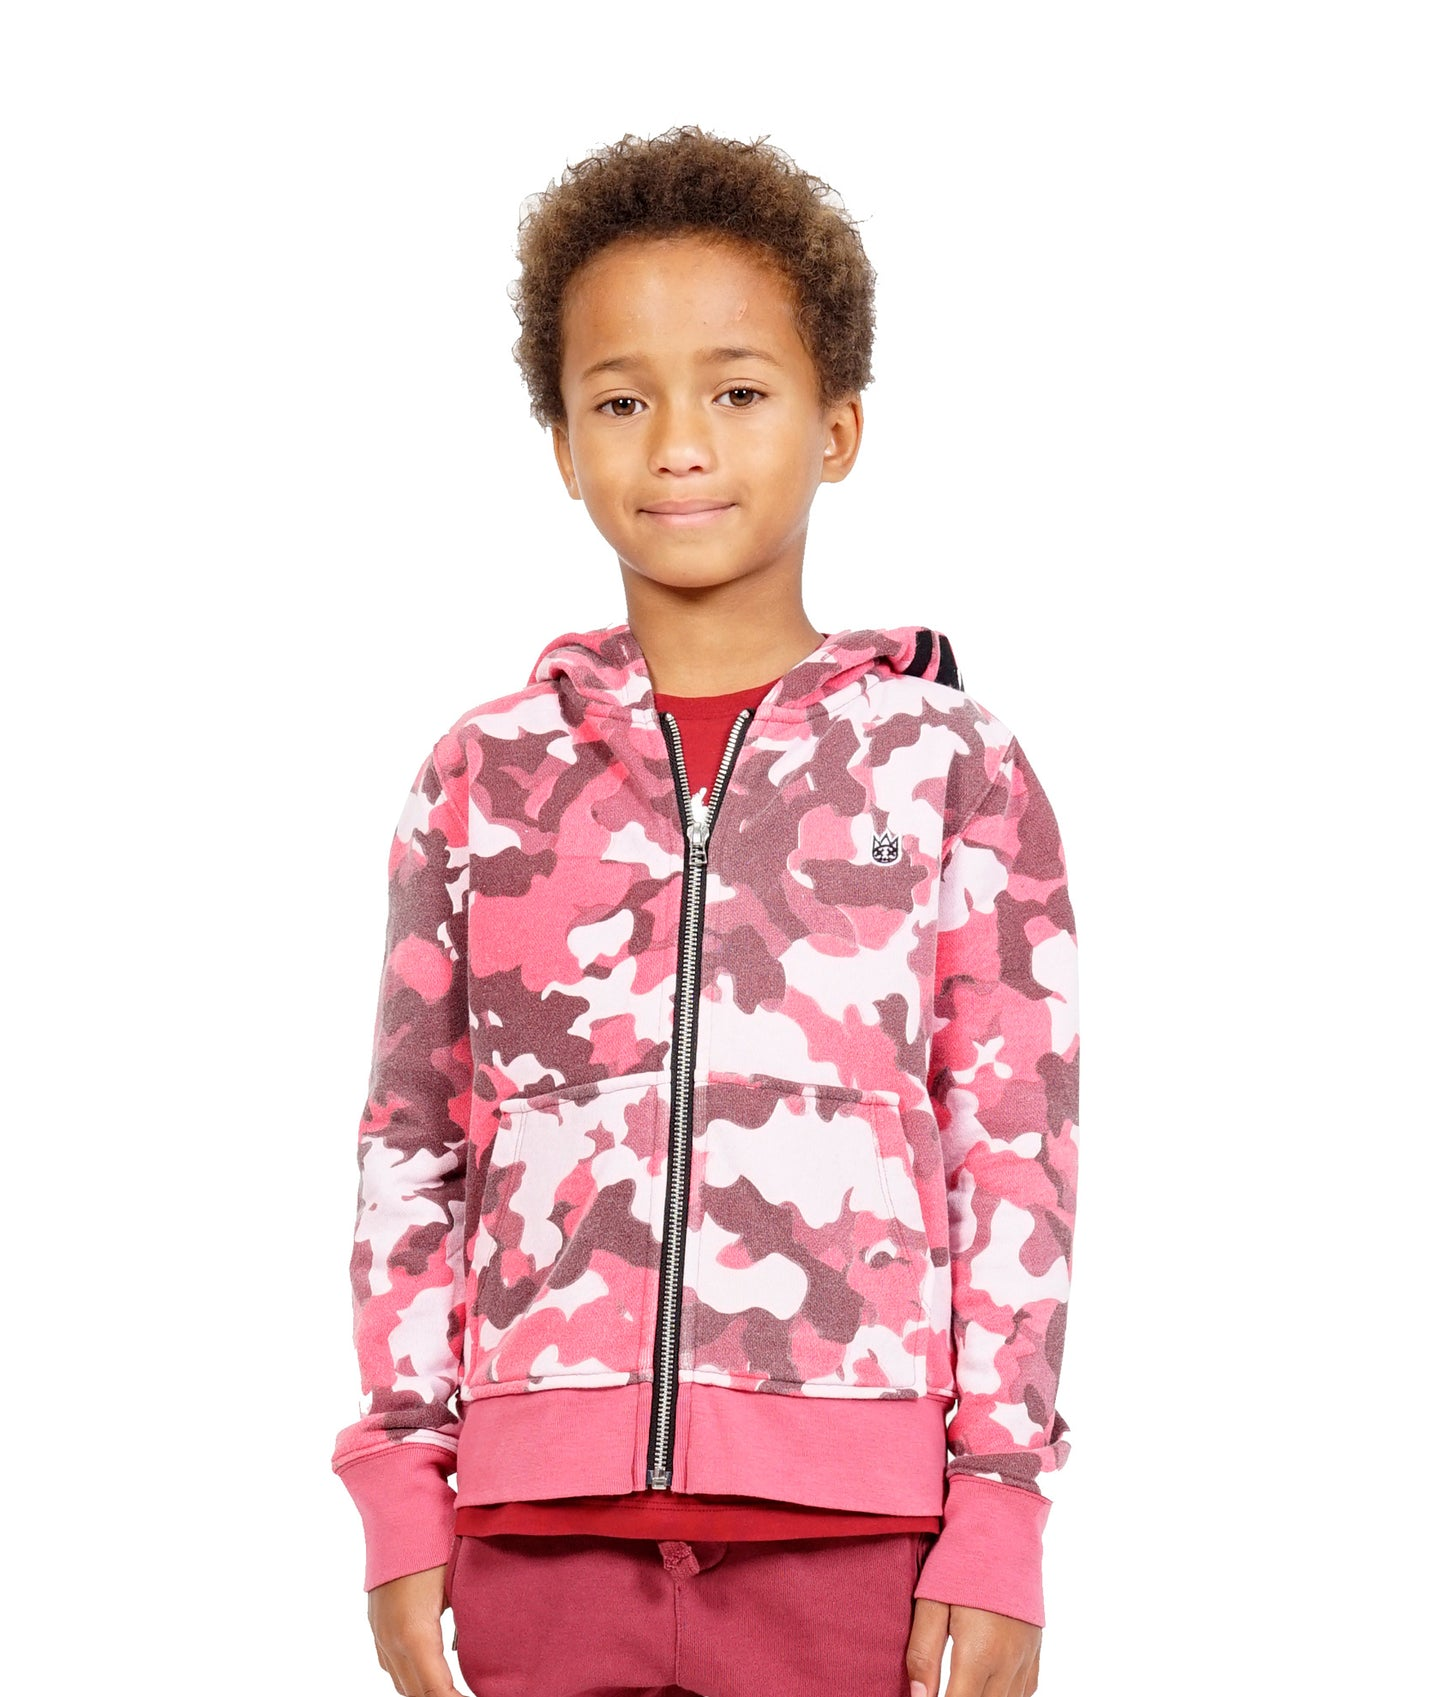 Cult of IndividualityKid's Camo Full Zip Hoody in Rio Red10